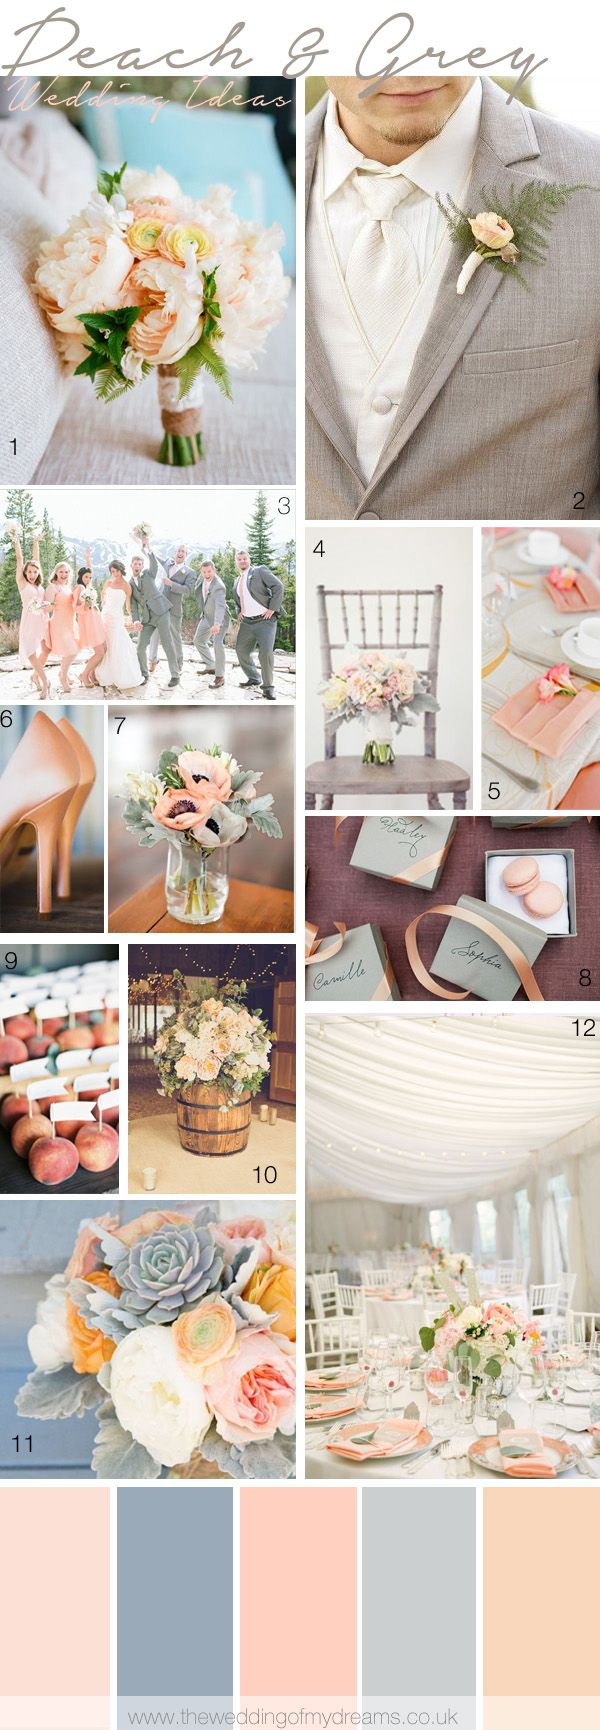 peach and grey wedding inspiration ideas